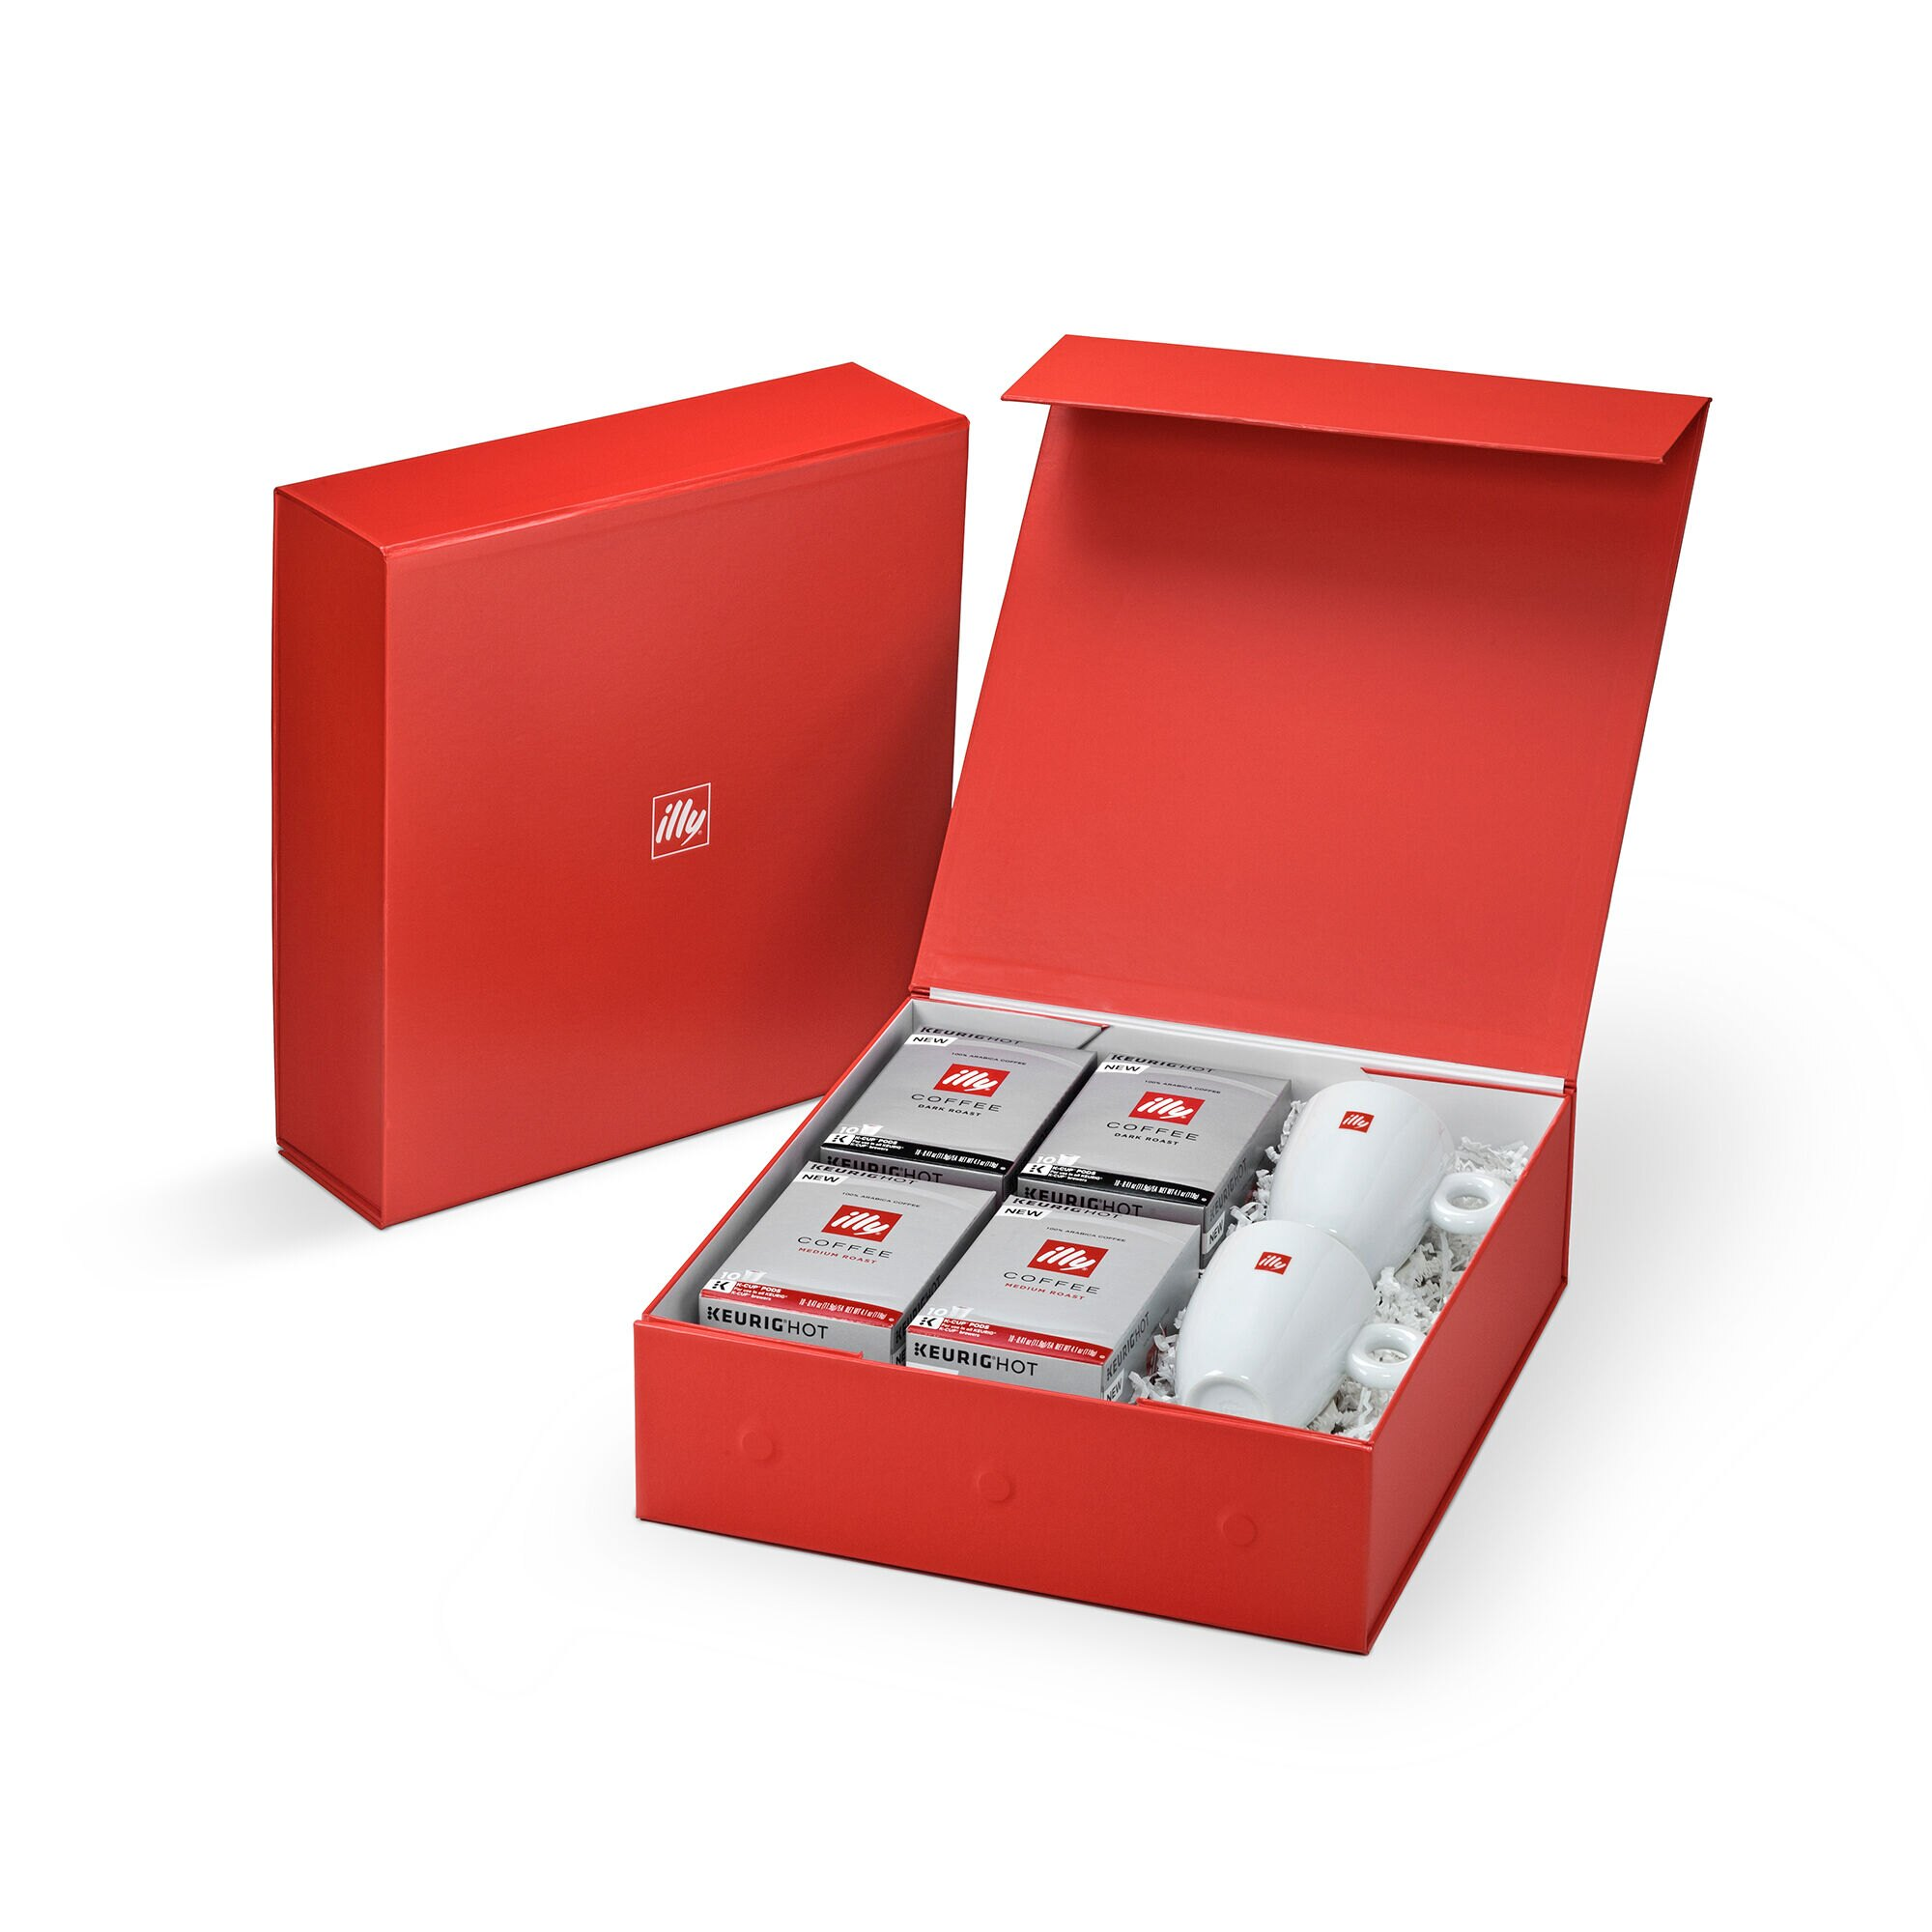 Illy k cup pods gift box illy eshop illy k cup pods gift box negle Choice Image